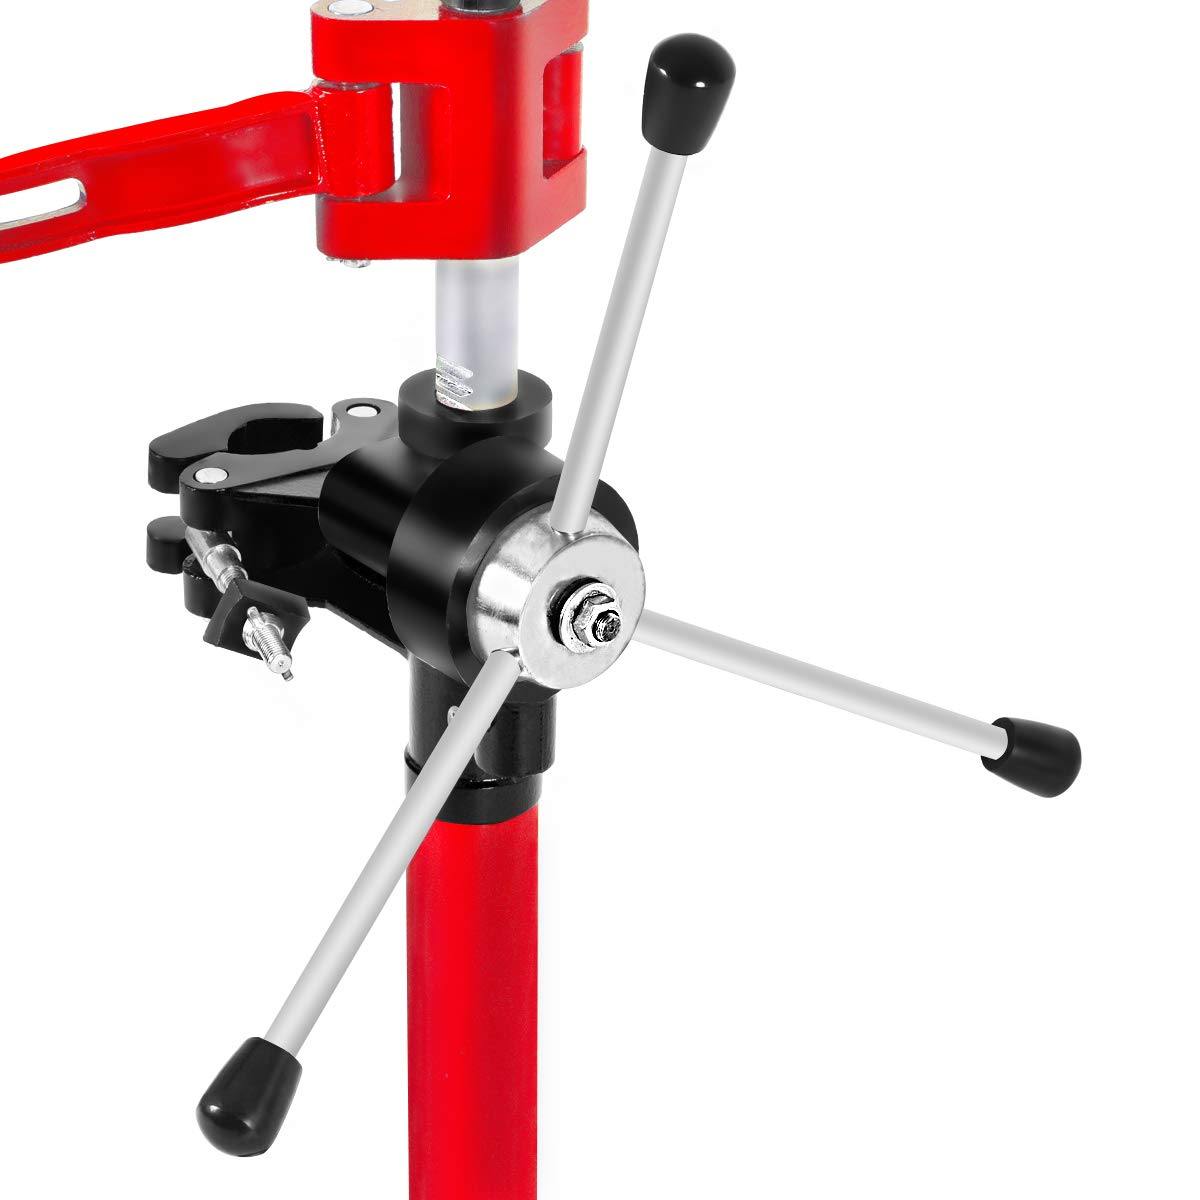 Goplus 20'' Strut Coil Spring Press Compressor Hand Operate Auto Equipment Compress, Red by Goplus (Image #3)